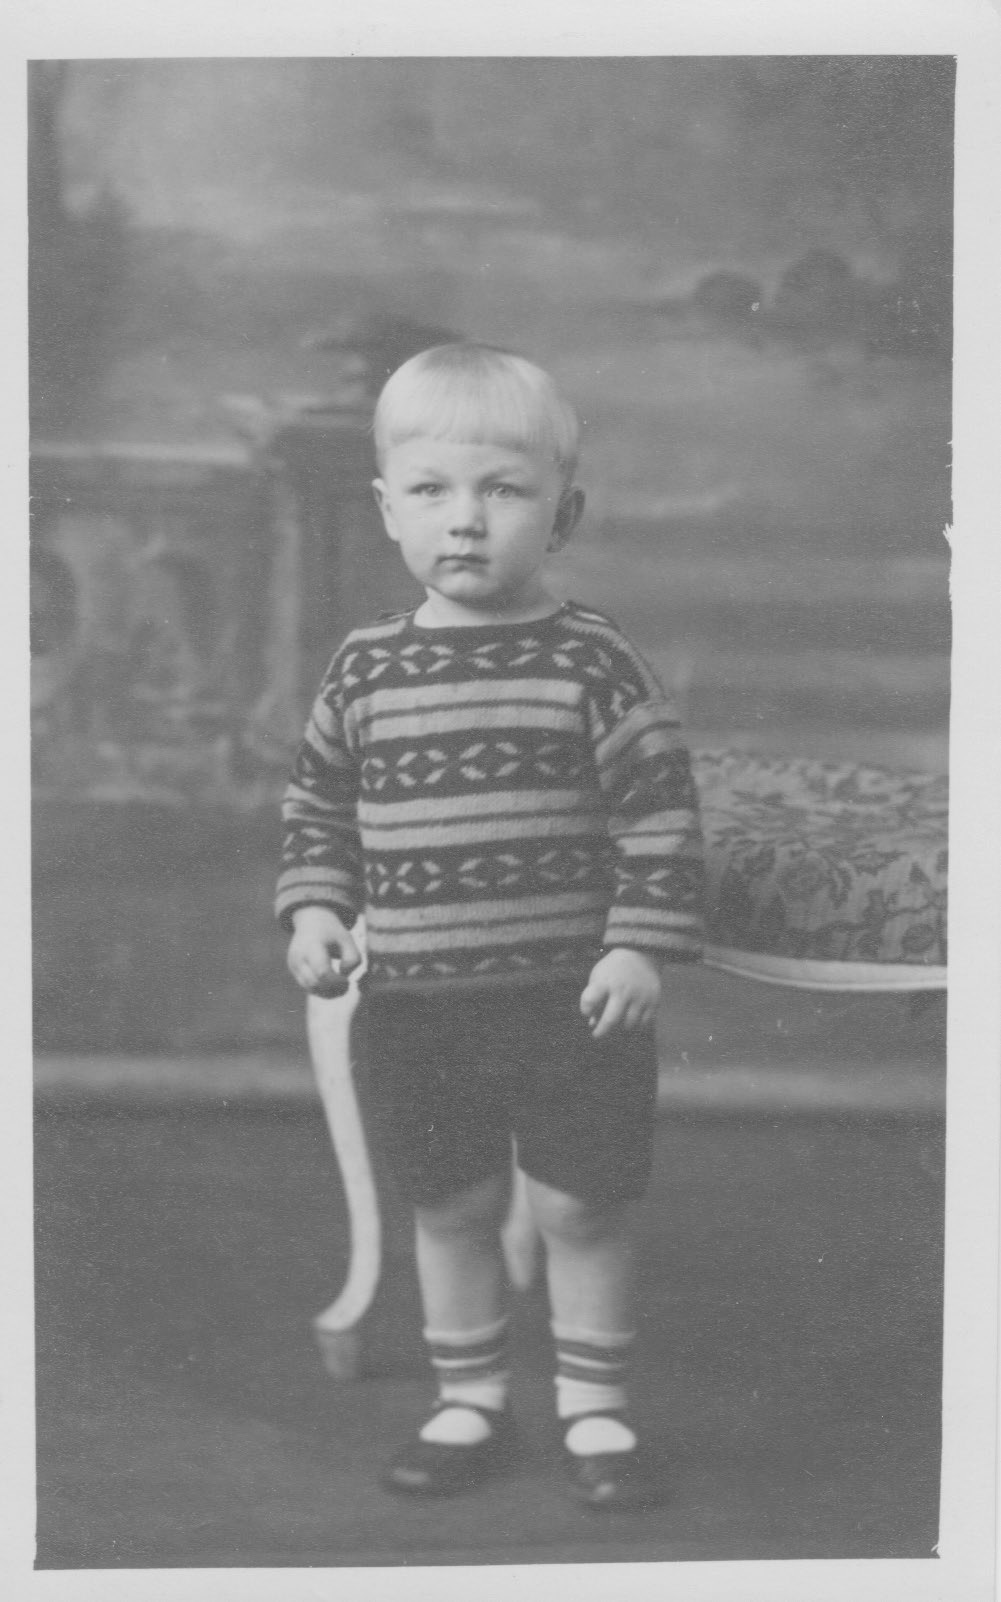 Ivor Treby at nearly two years old in 1934.